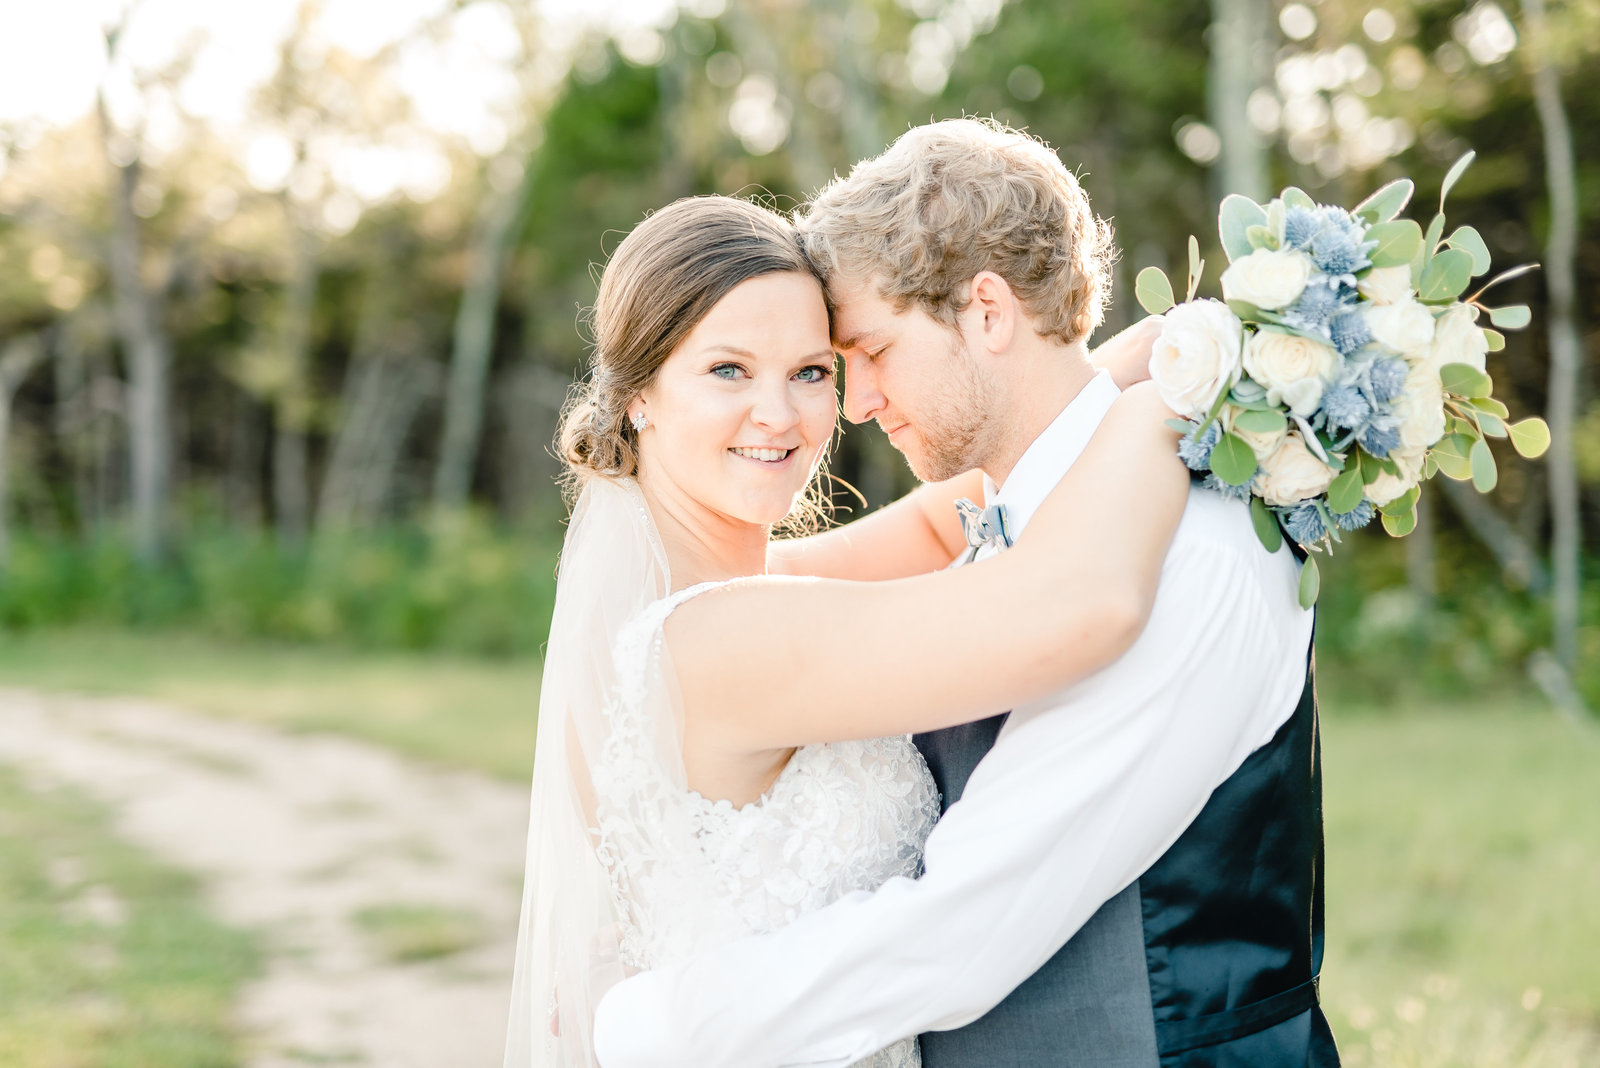 WeiderWeddingBrideandGroomPortraits-66